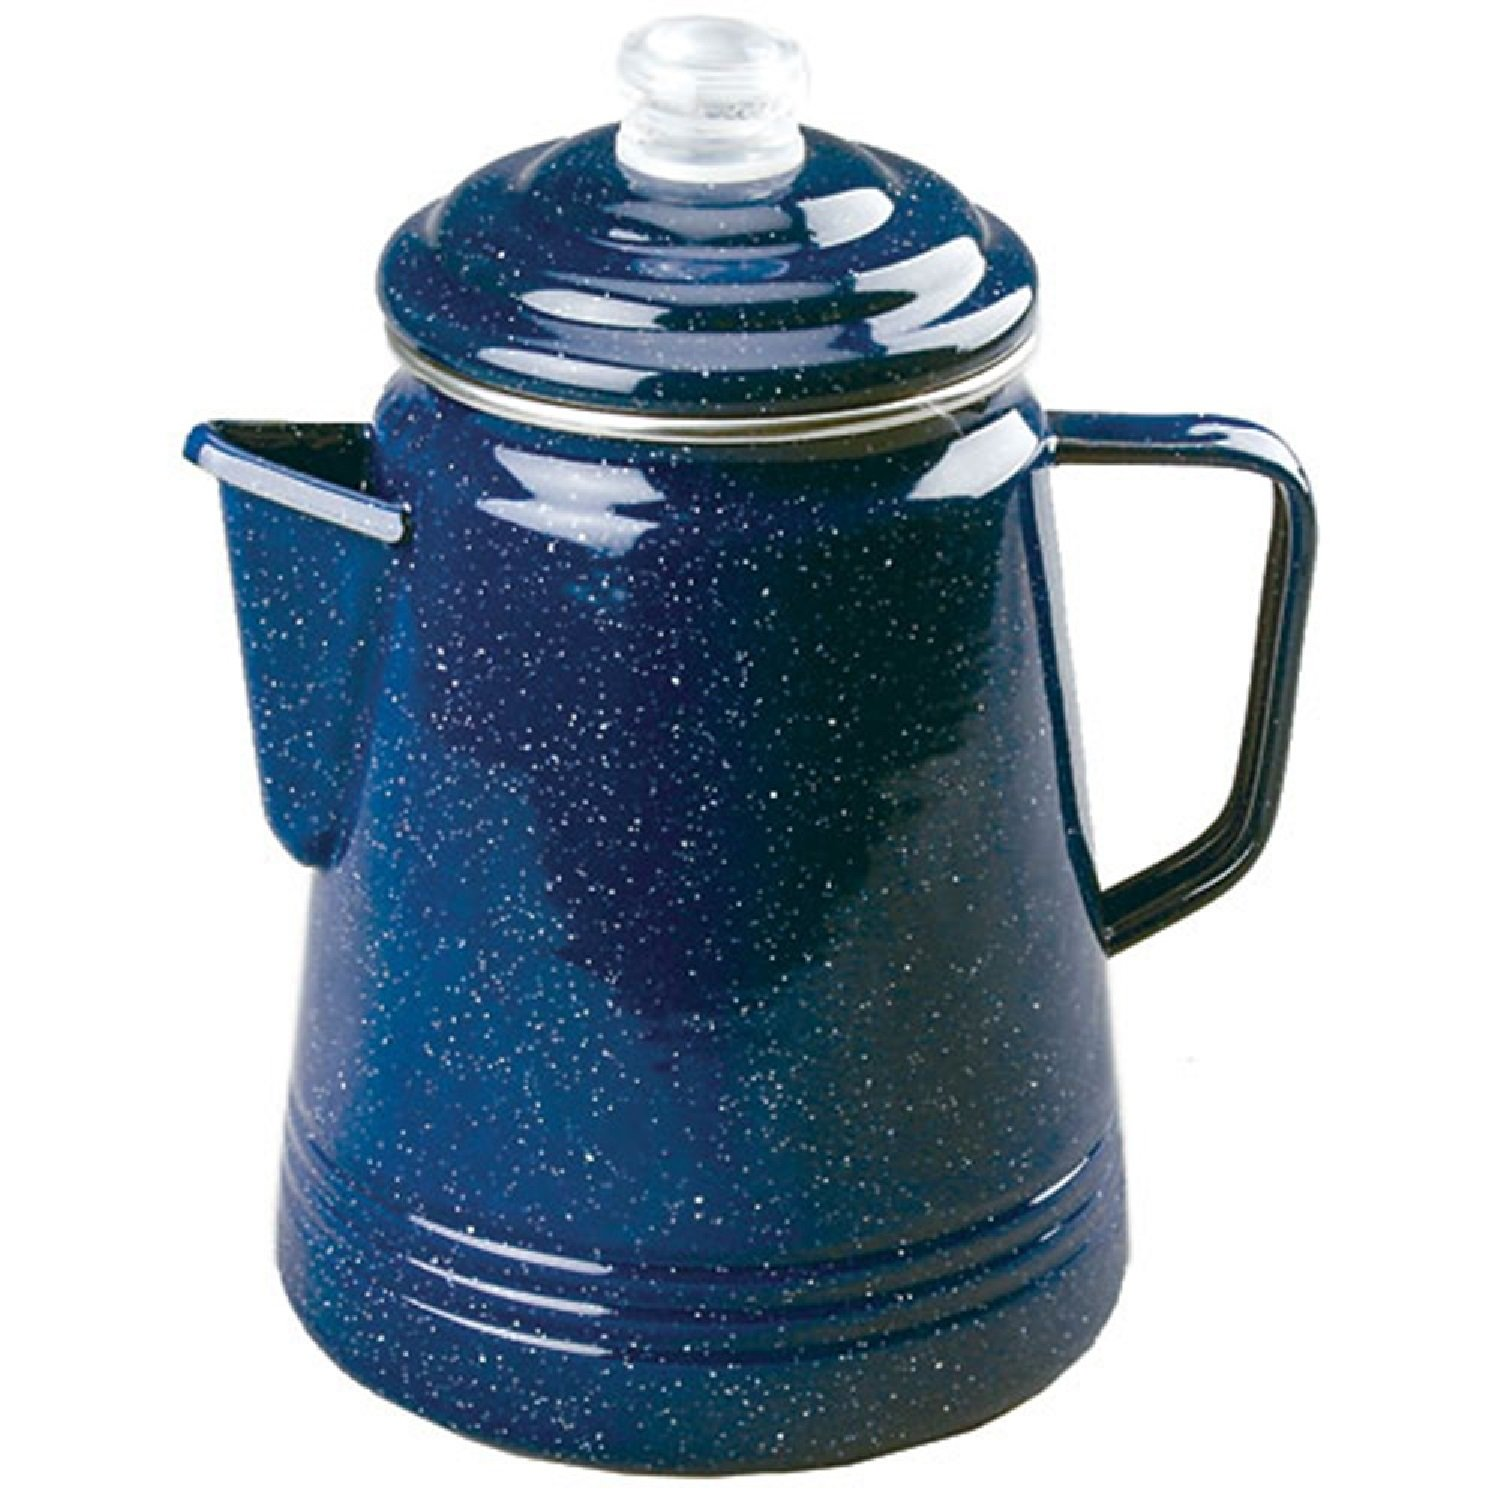 Coleman 14 Cup Percolator by Coleman